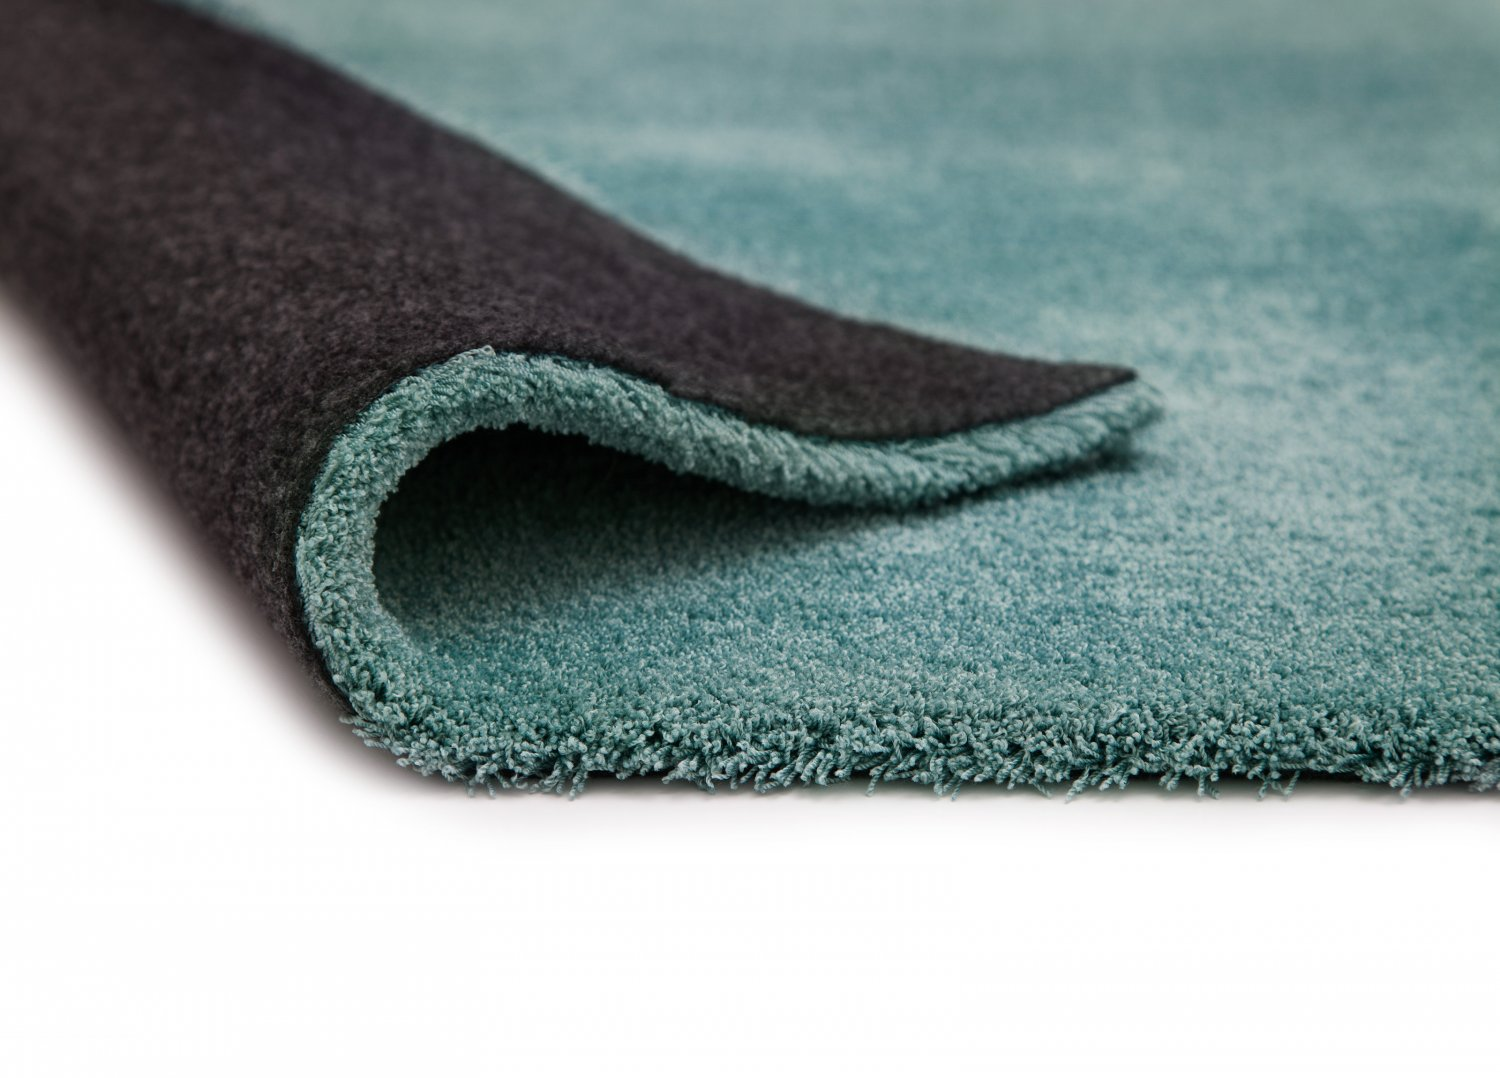 Tapis Shaggy Turquoise Tapis 160 X 230 Cm Tapis Shaggy Soft Dream Turquoise